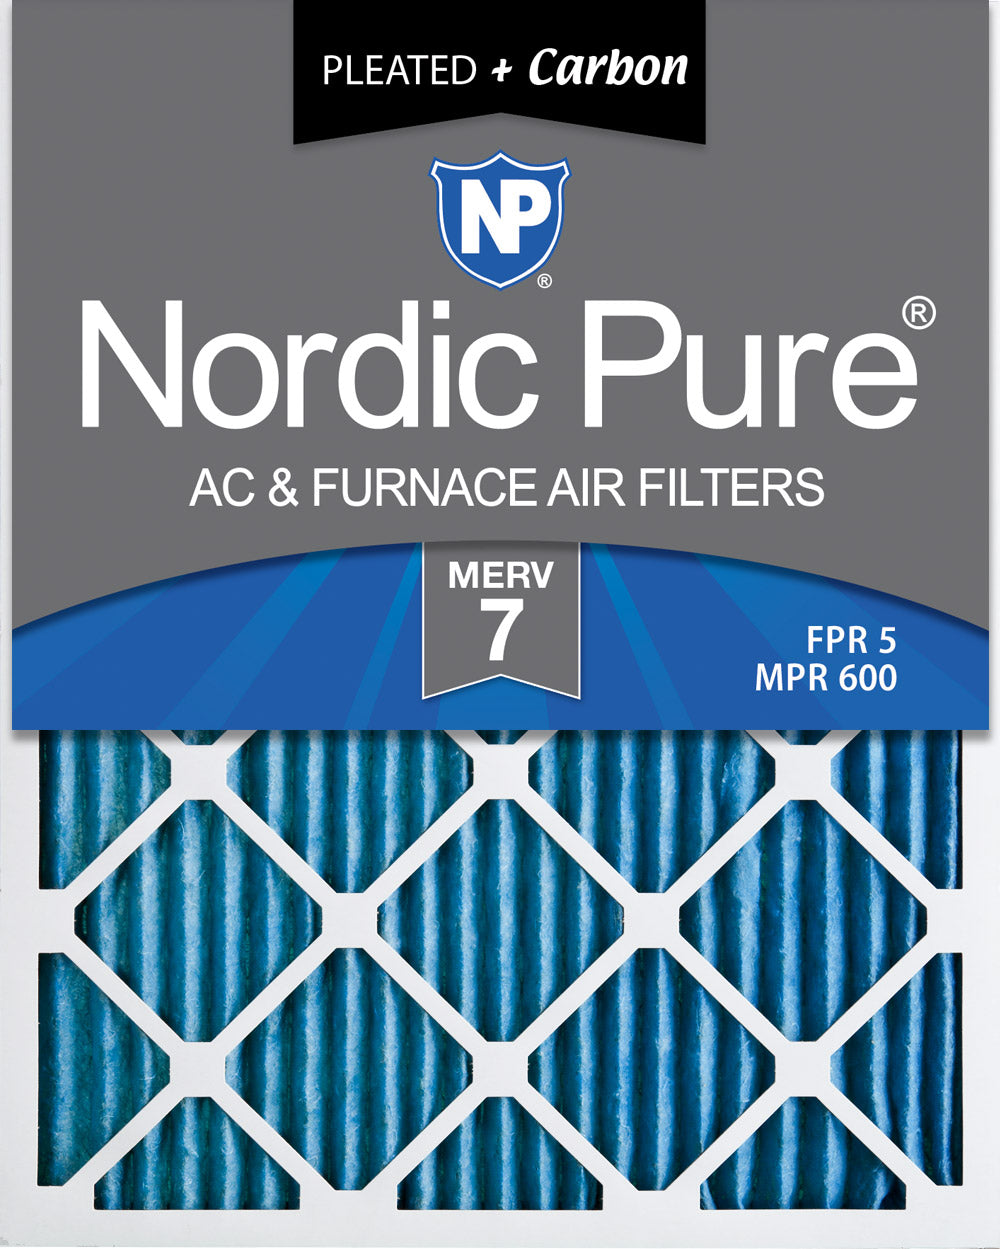 12x36x1 Pleated Air Filters MERV 7 Plus Carbon 6 Pack